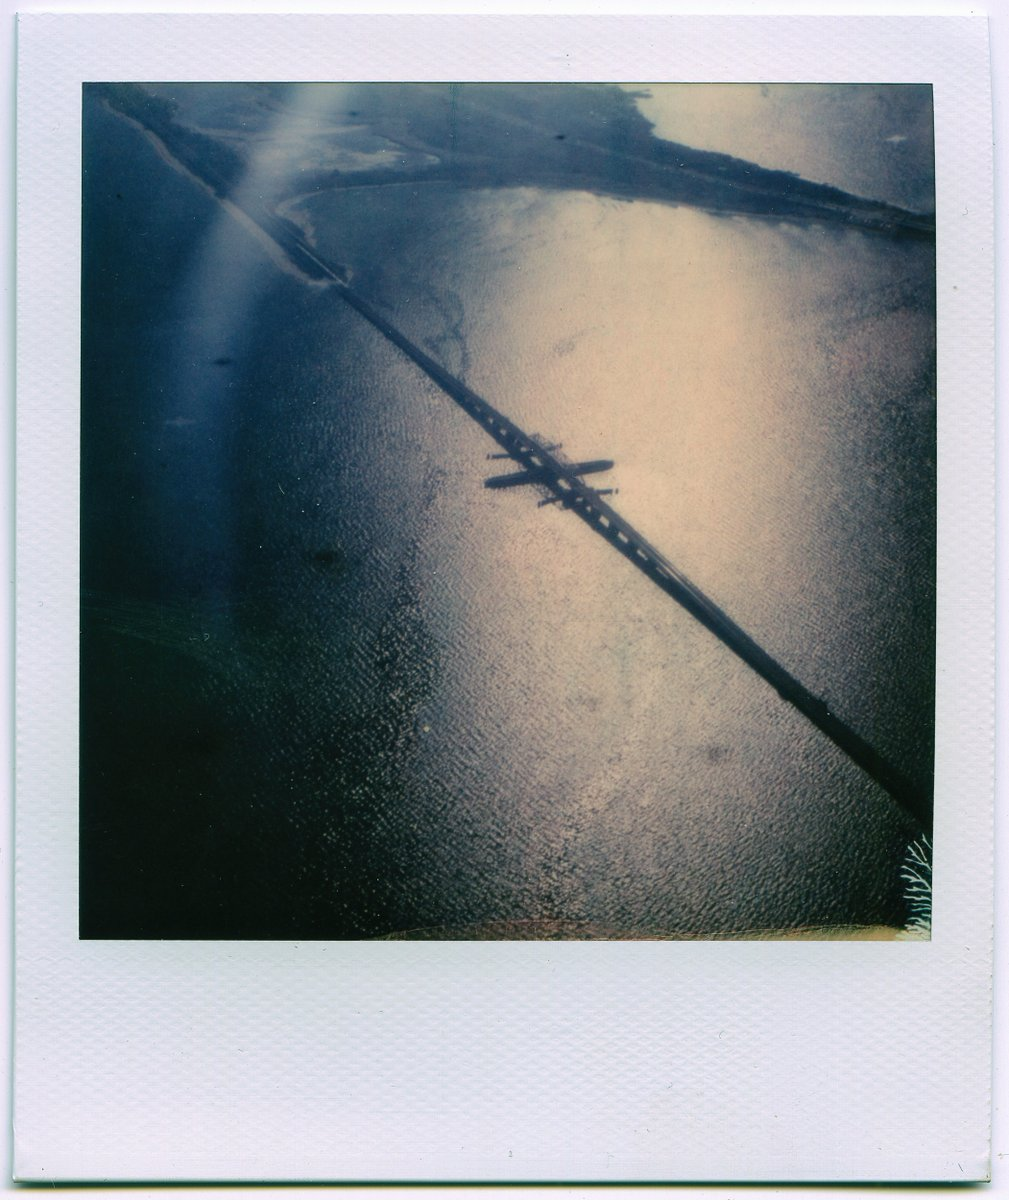 Above Jamaica Bay (2017) #Polaroid from my past pic.twitter.com/hkMvDhJmvs